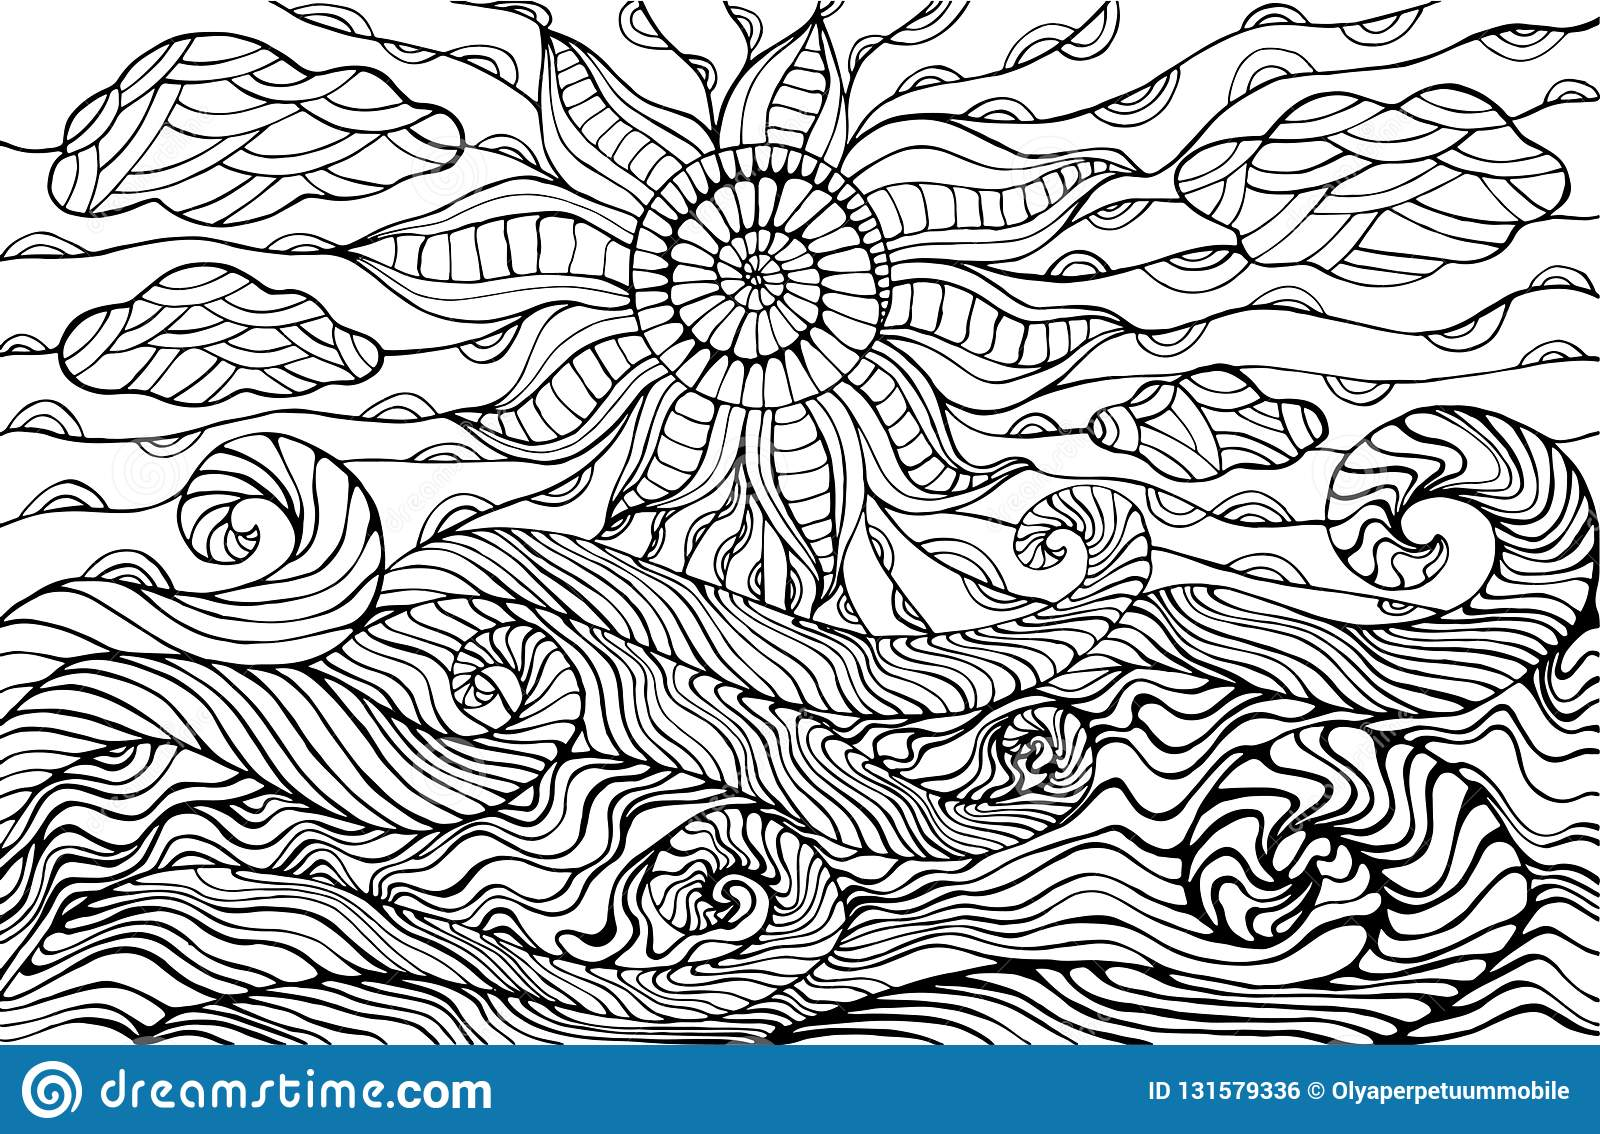 doodle sun clouds and waves coloring for children an stock vector illustration of coloring pages Waves Coloring Page